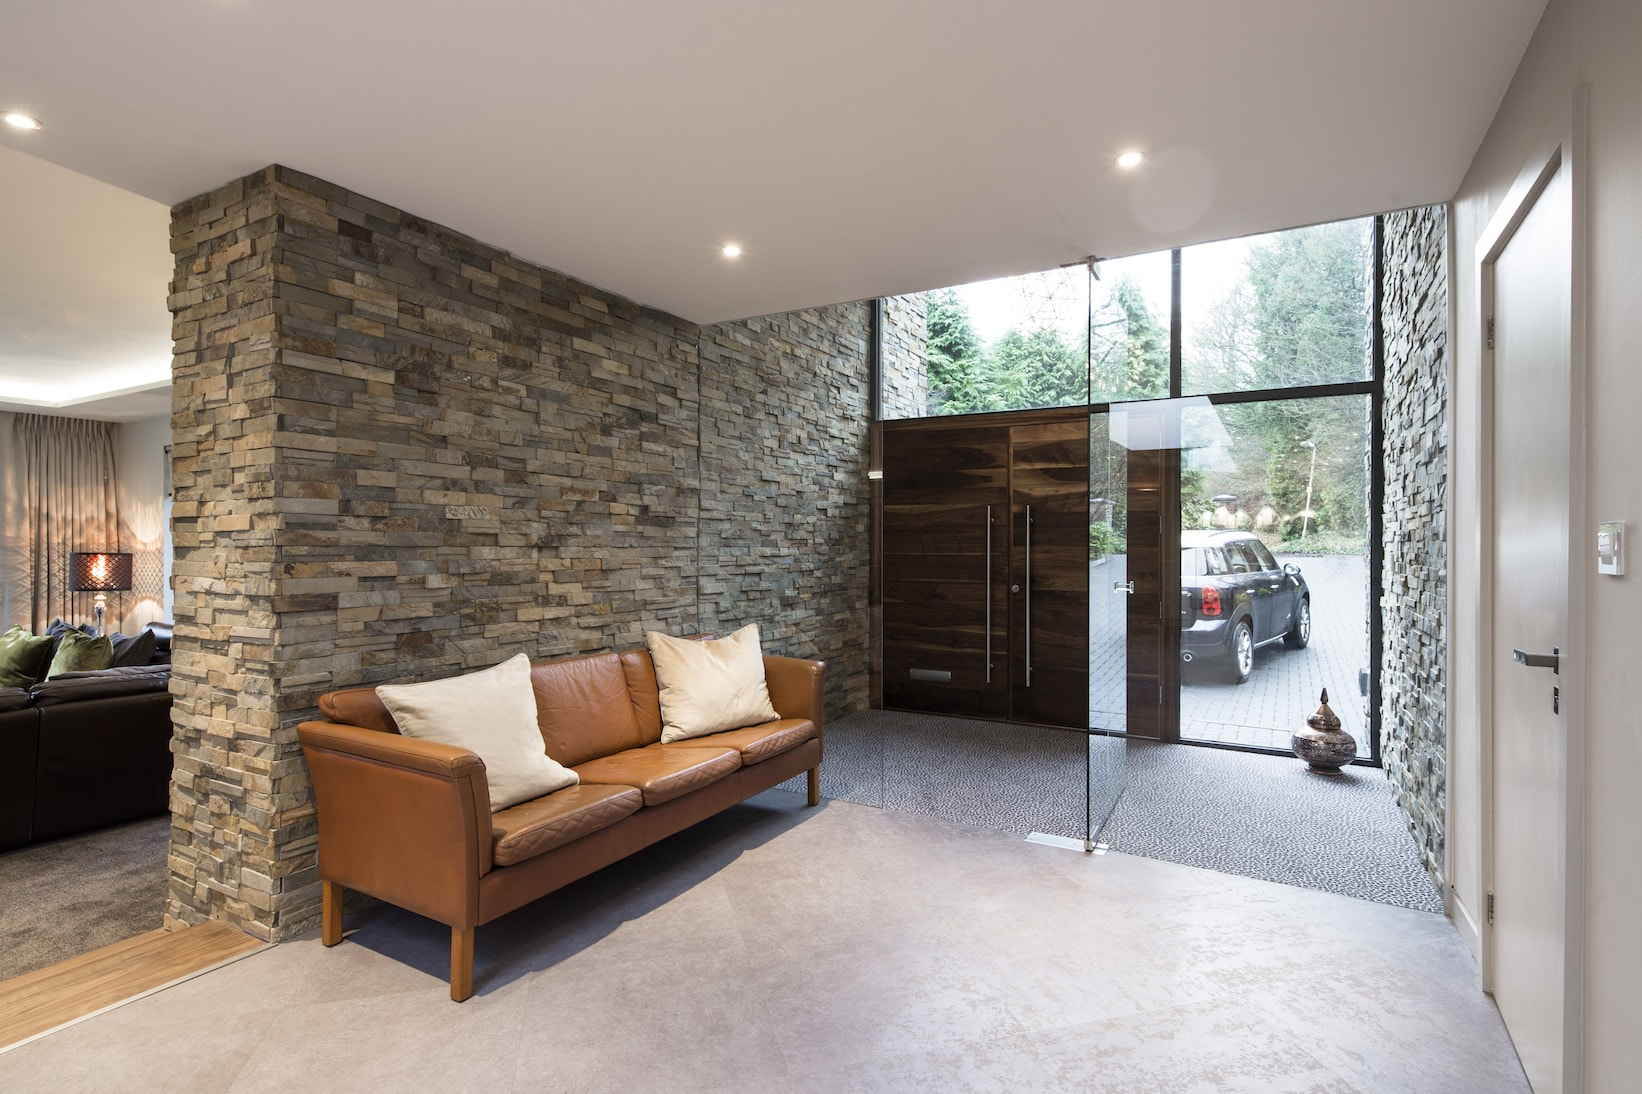 Norstone Ochre Slimline Rock Panels used on both the interior and exterior of a residential entryway